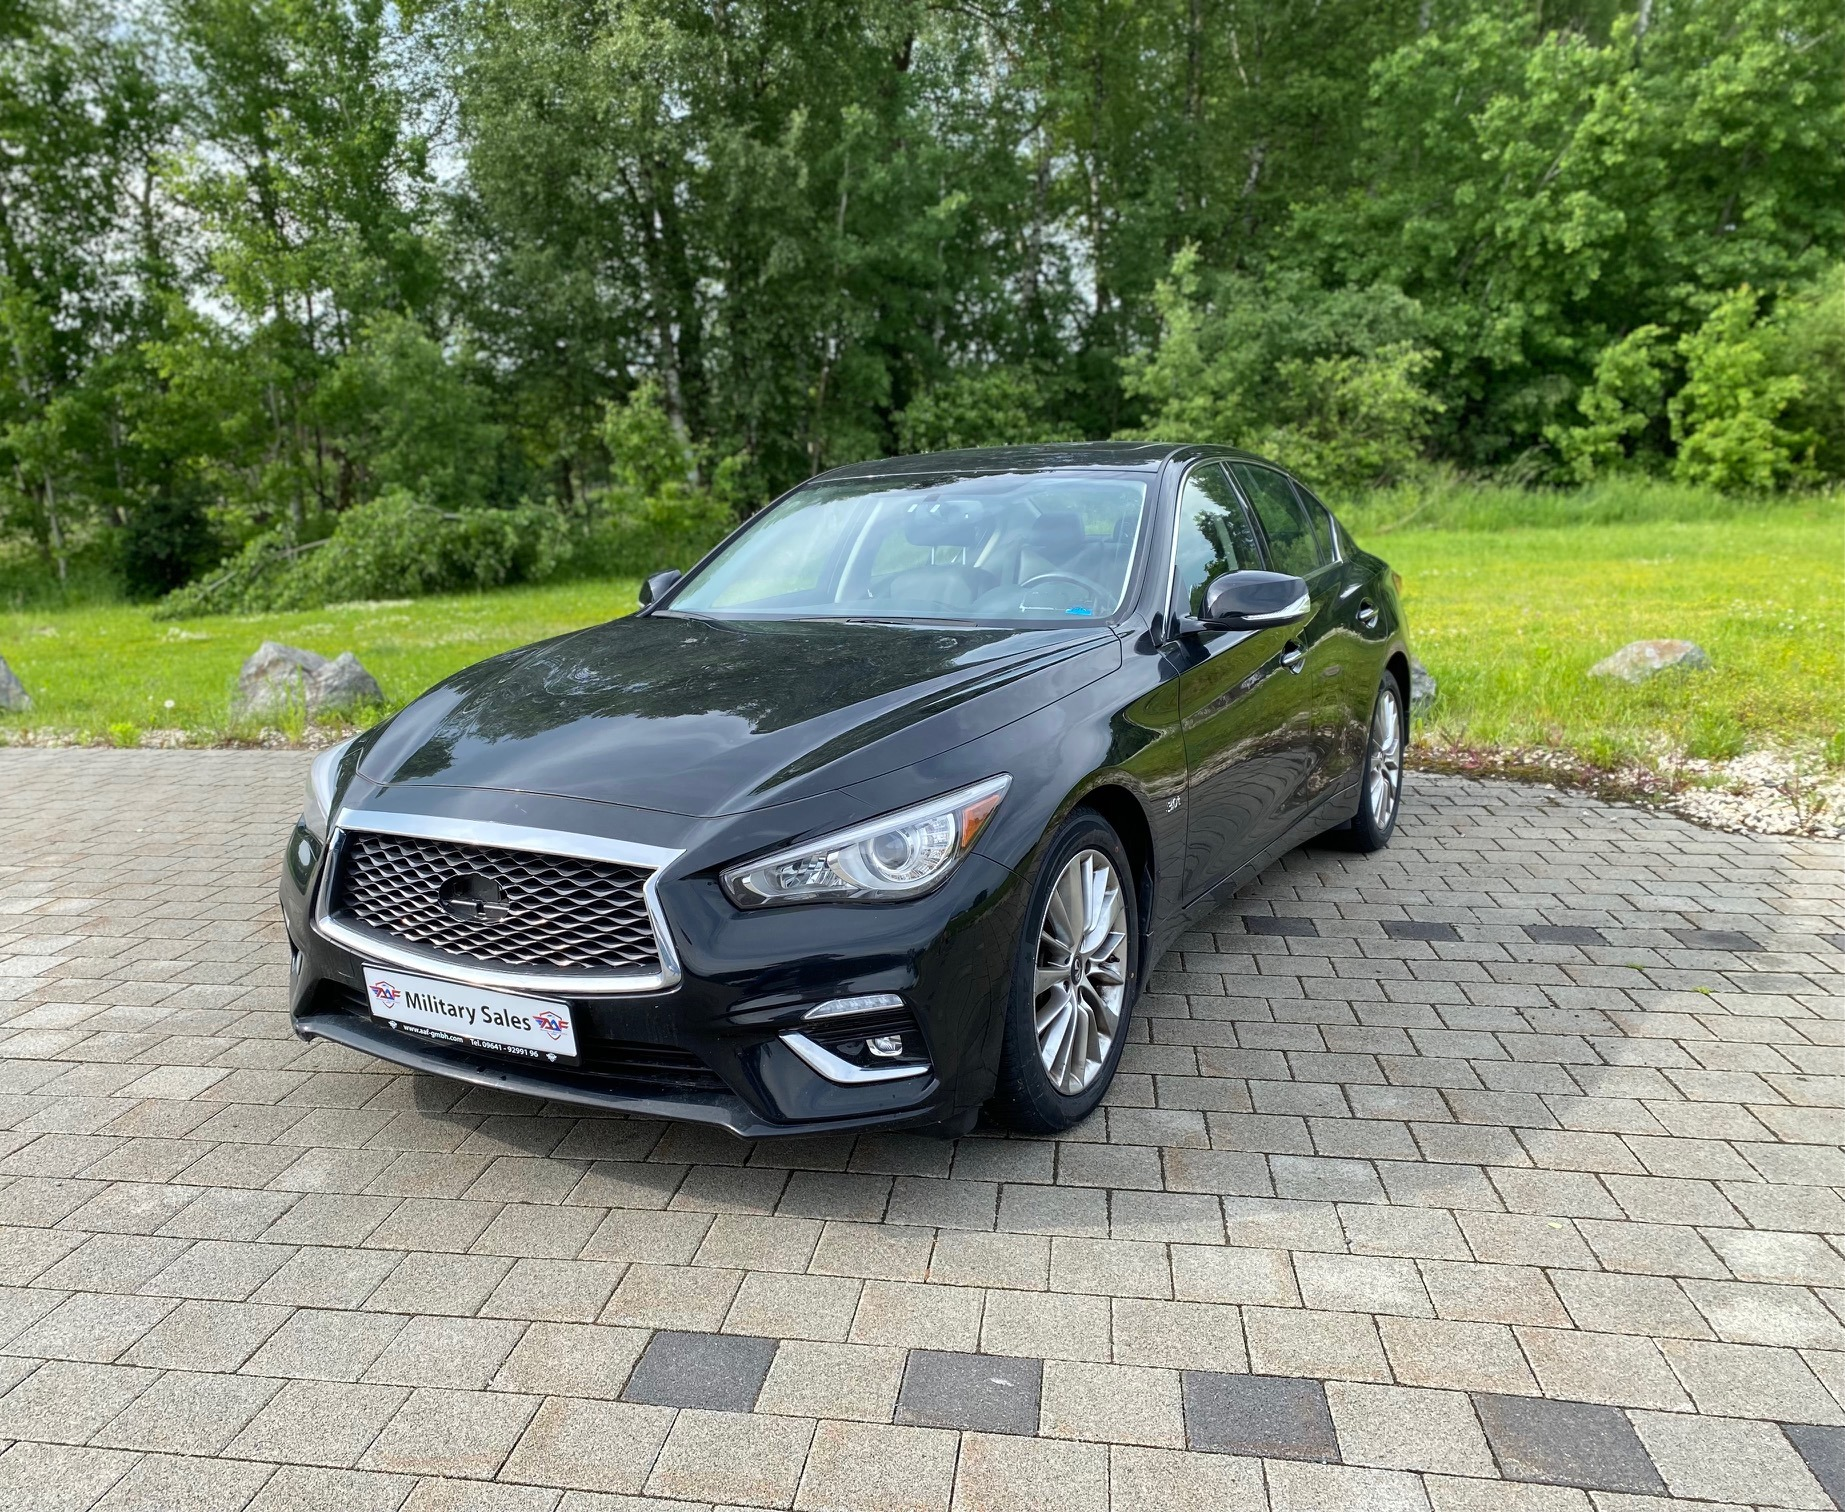 2018 Infiniti Q50 3.0T Luxe</br>as low as </br>$229 per paycheck